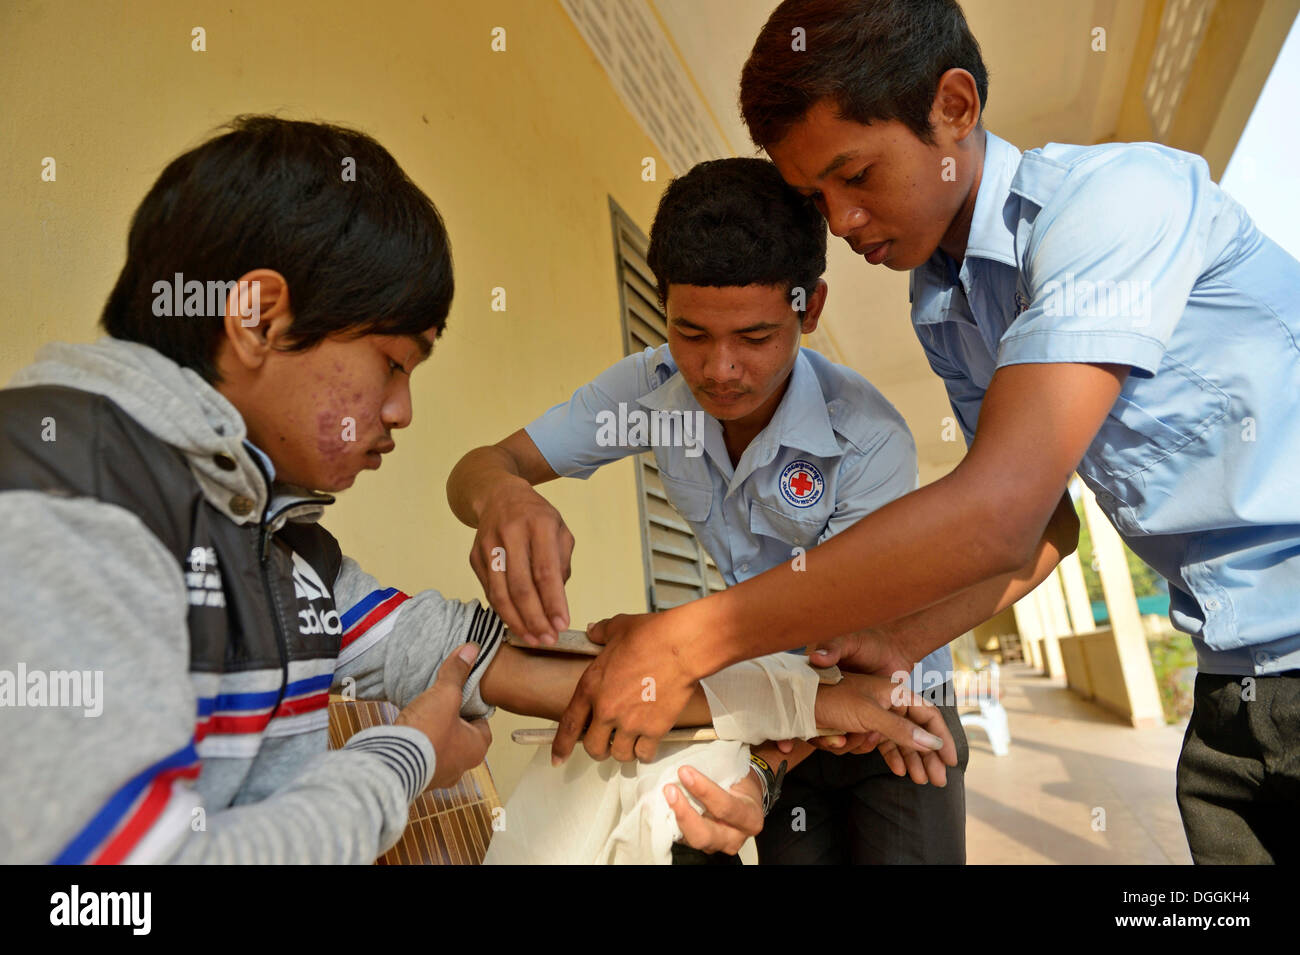 Applying a pressure bandage, training of young people from the community to become first aid workers by the Red - Stock Image